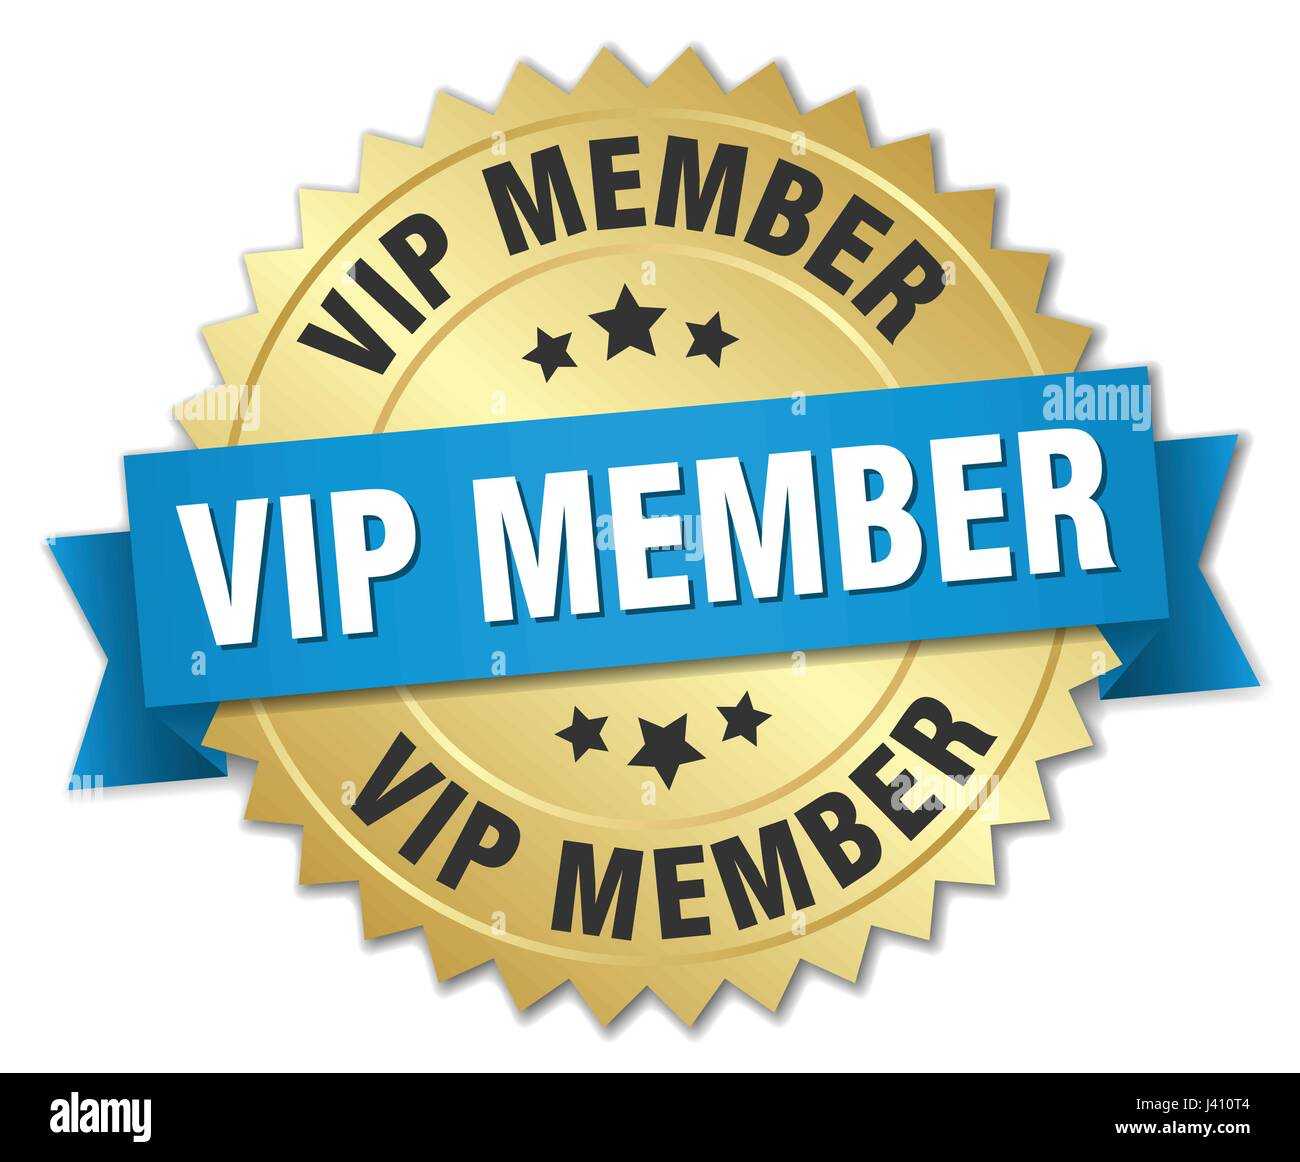 vip member round isolated gold badge - Stock Image